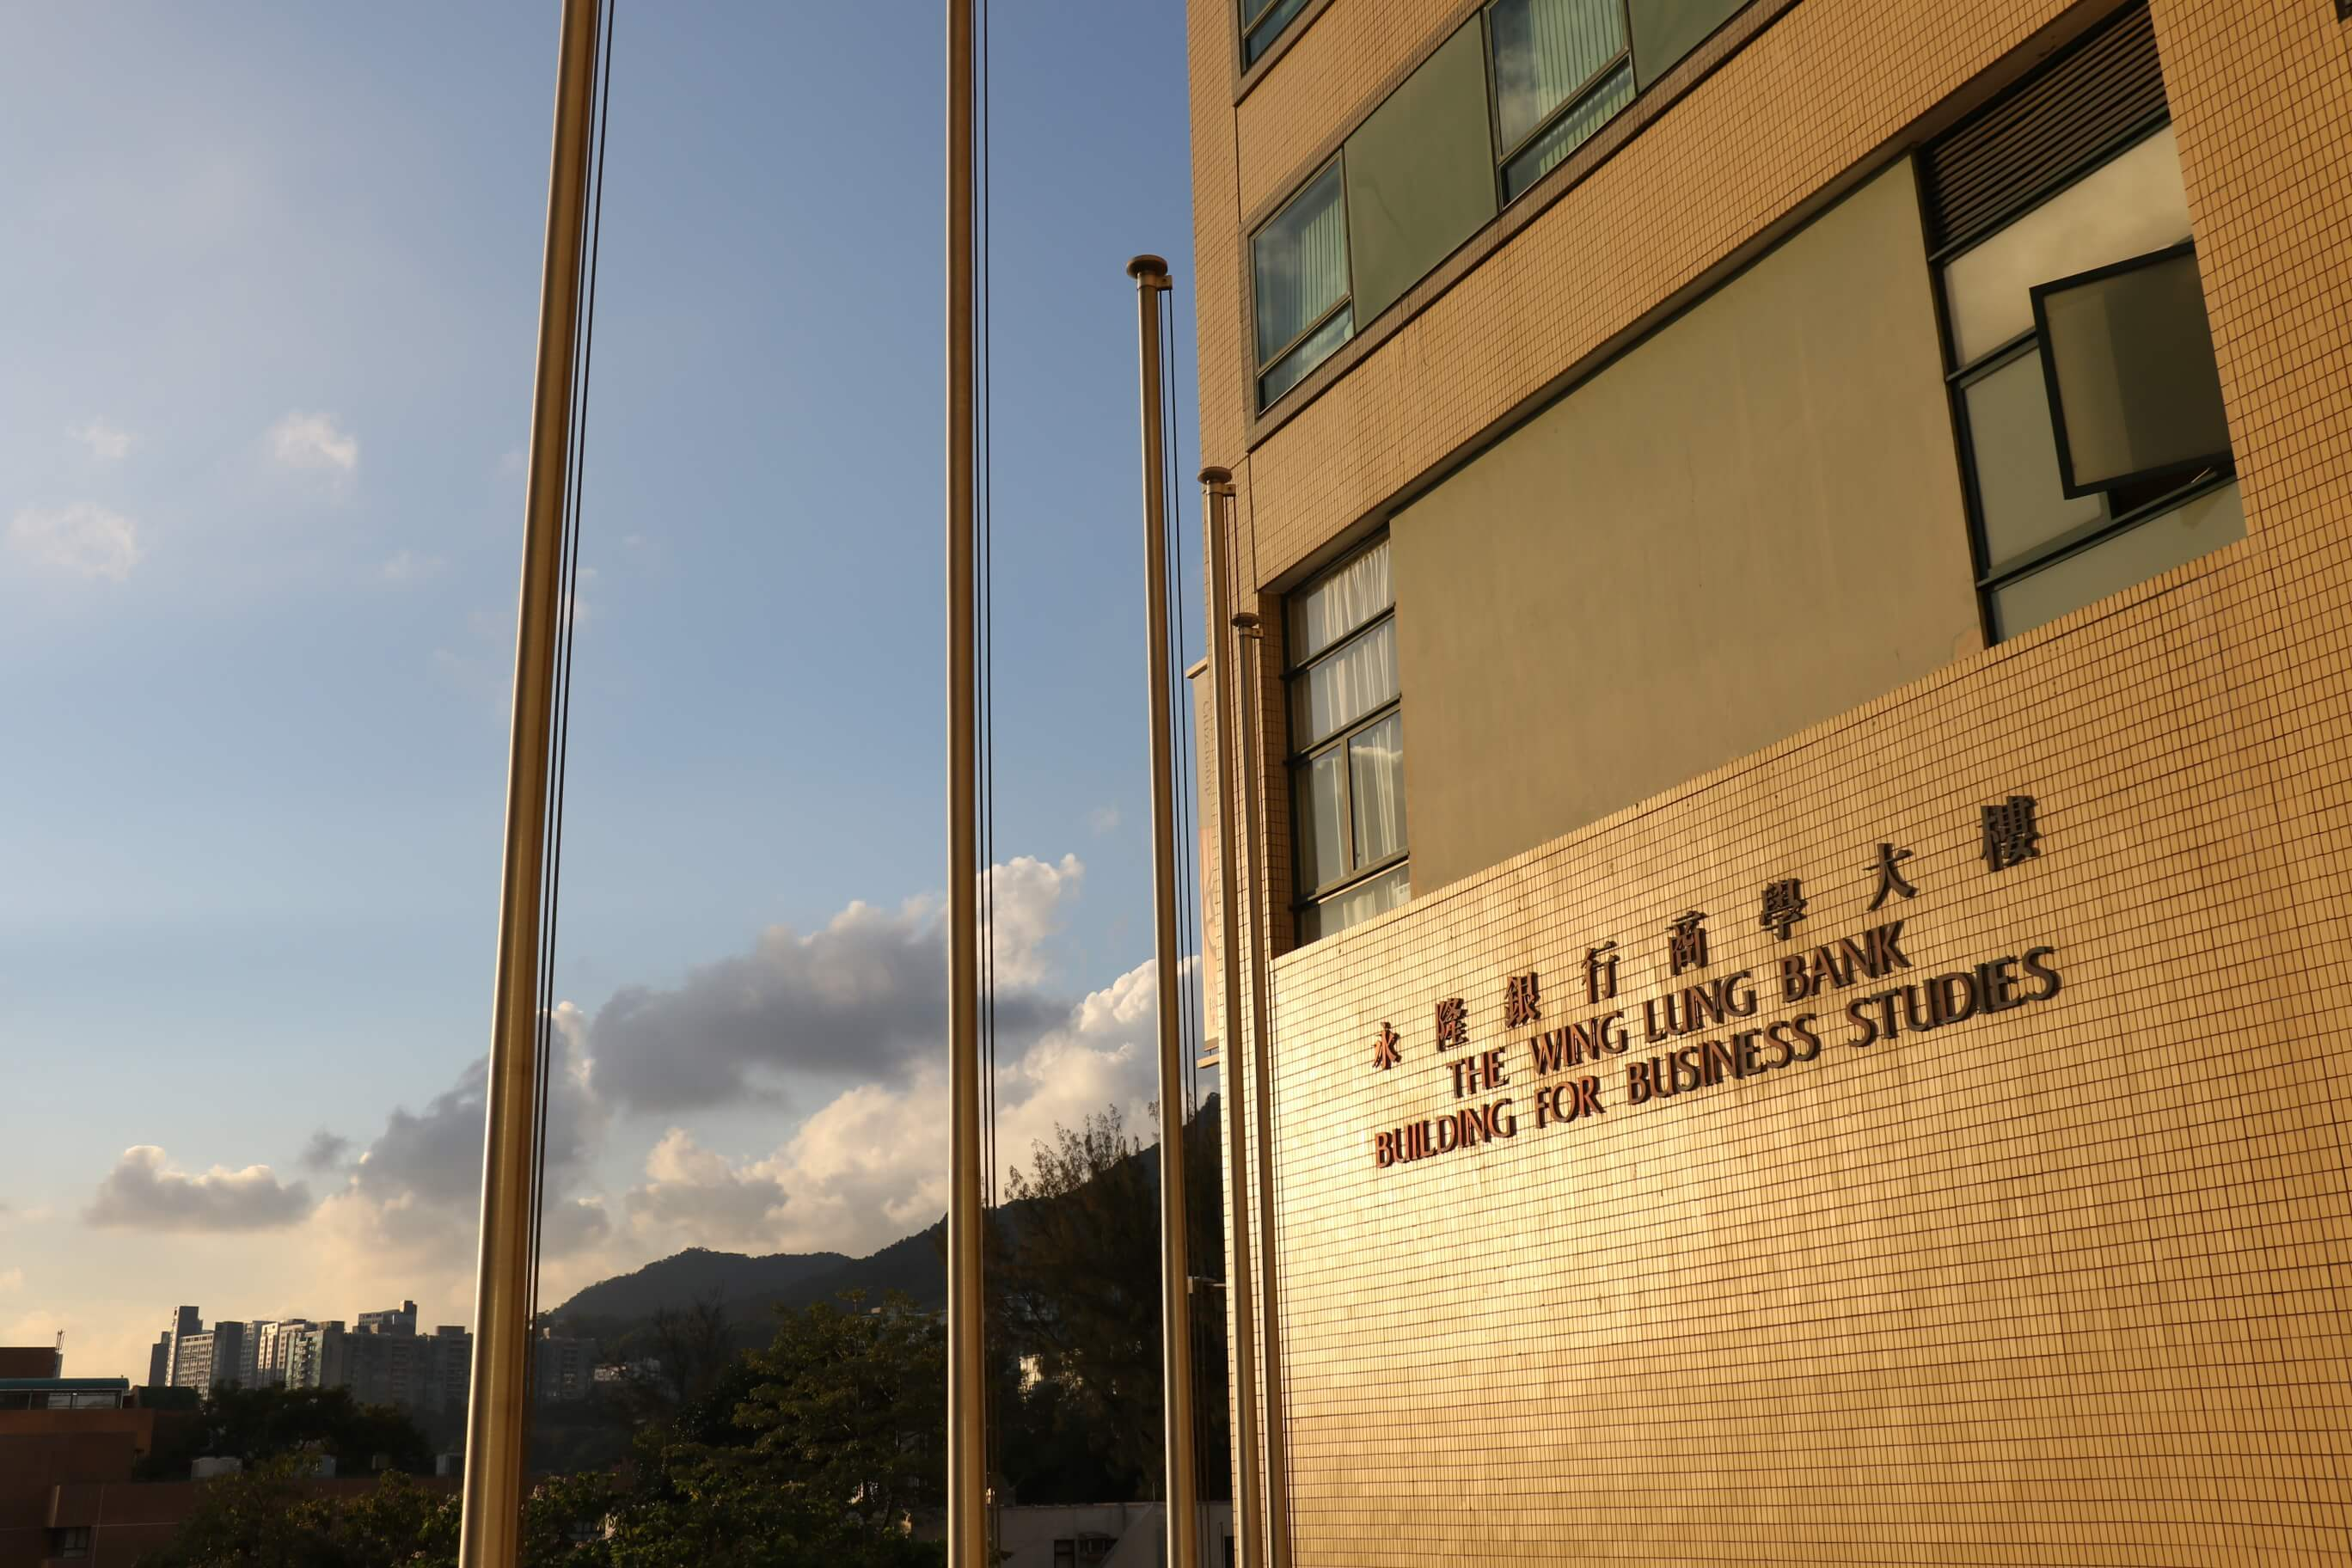 Hong Kong Baptist University- Wing Lung Bank Building for Business Studies